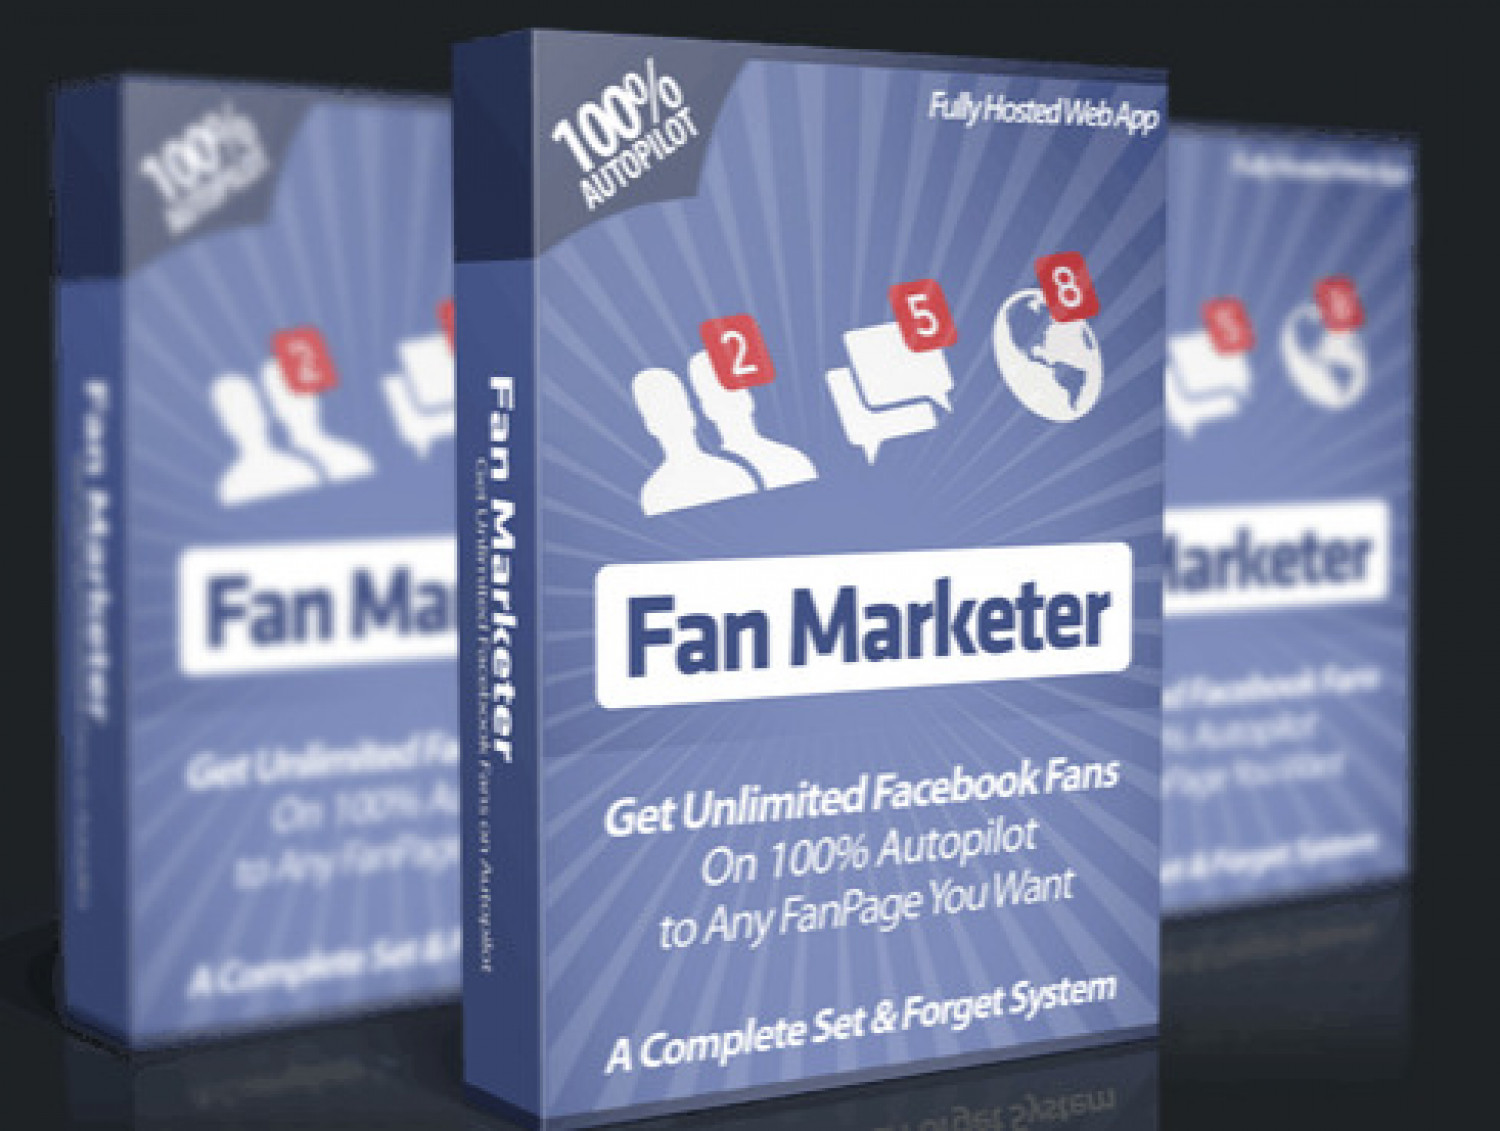 Fan Marketer review and Exclusive $26,400 Bonus Infographic